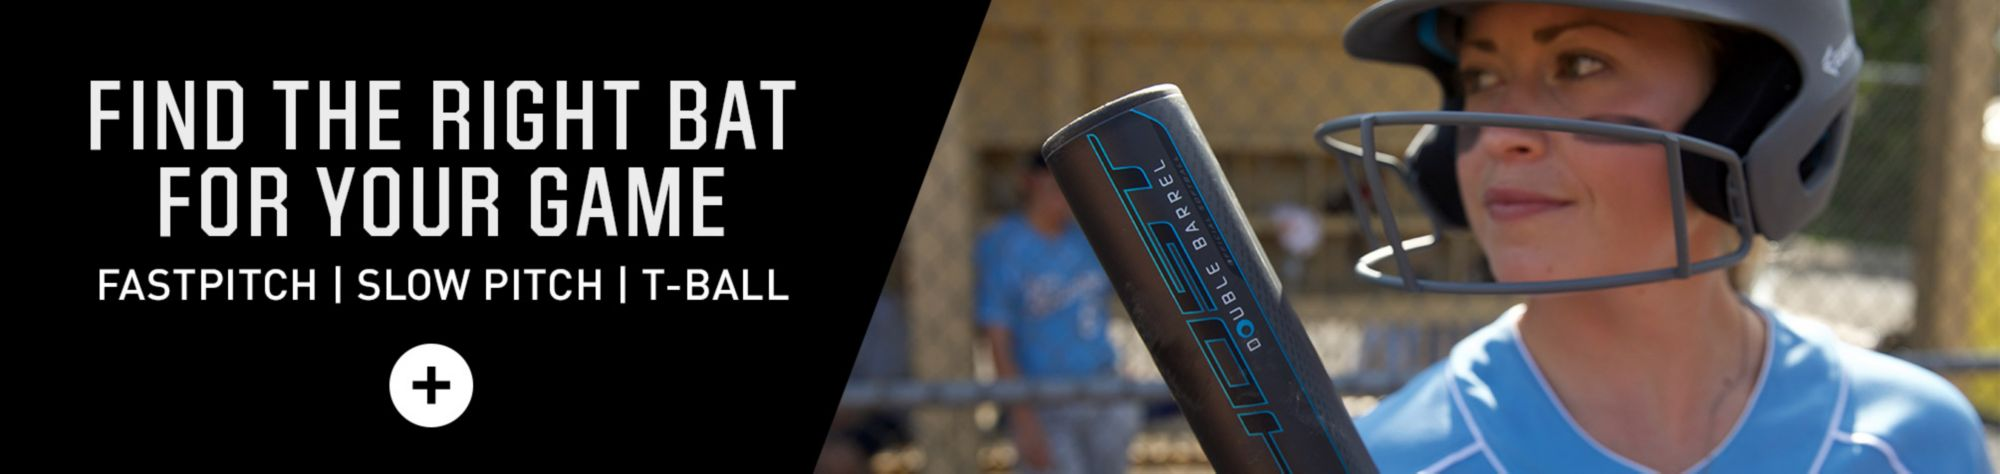 Find the right bat for your game